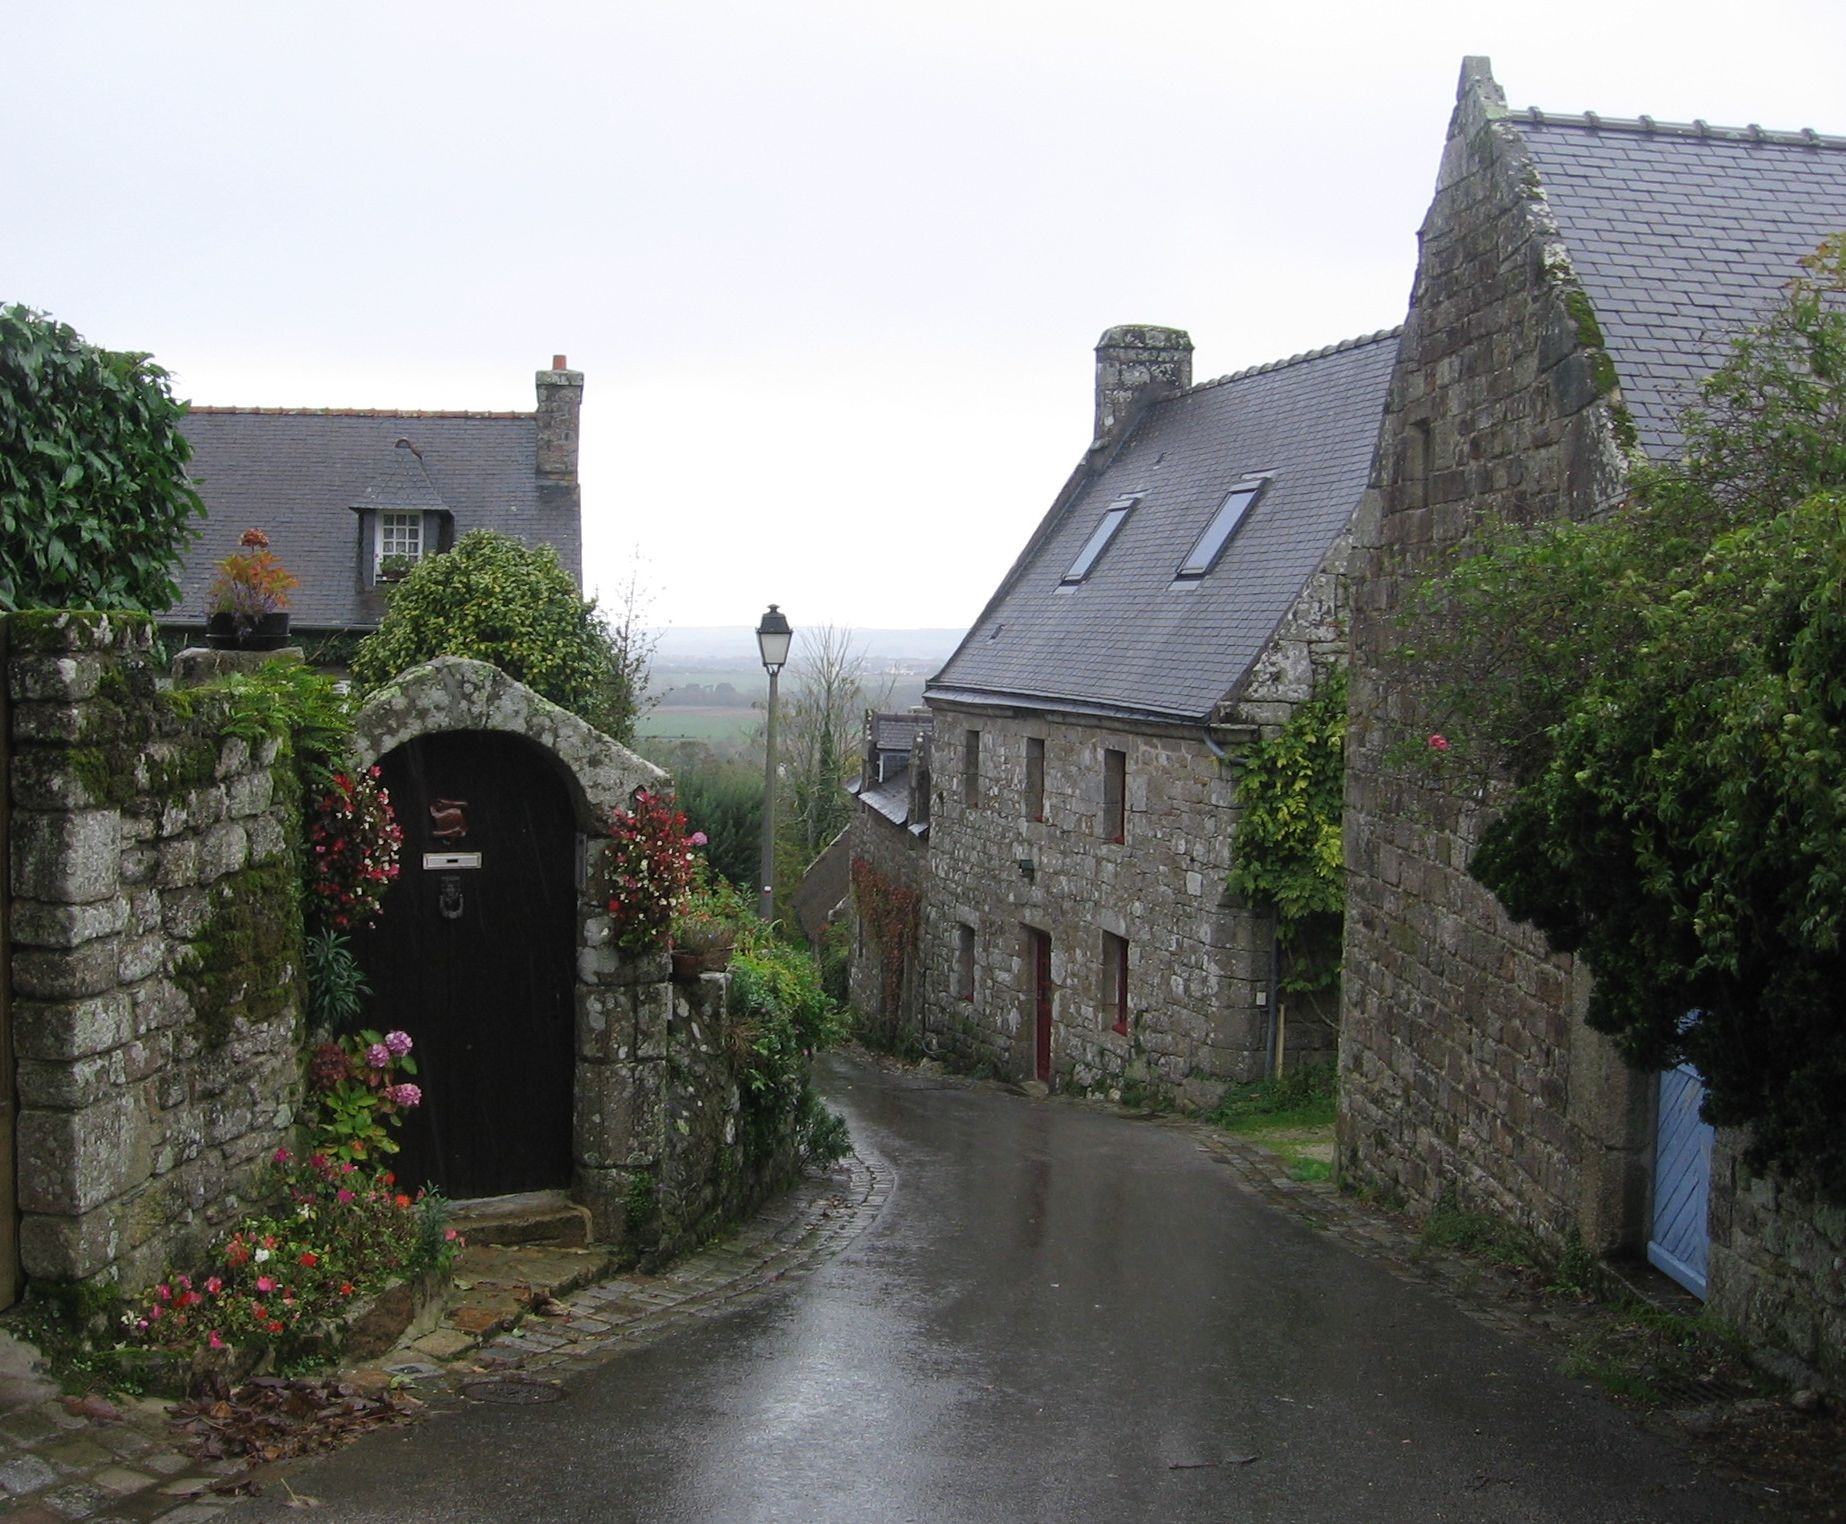 Locronan and its typical Breton architecture